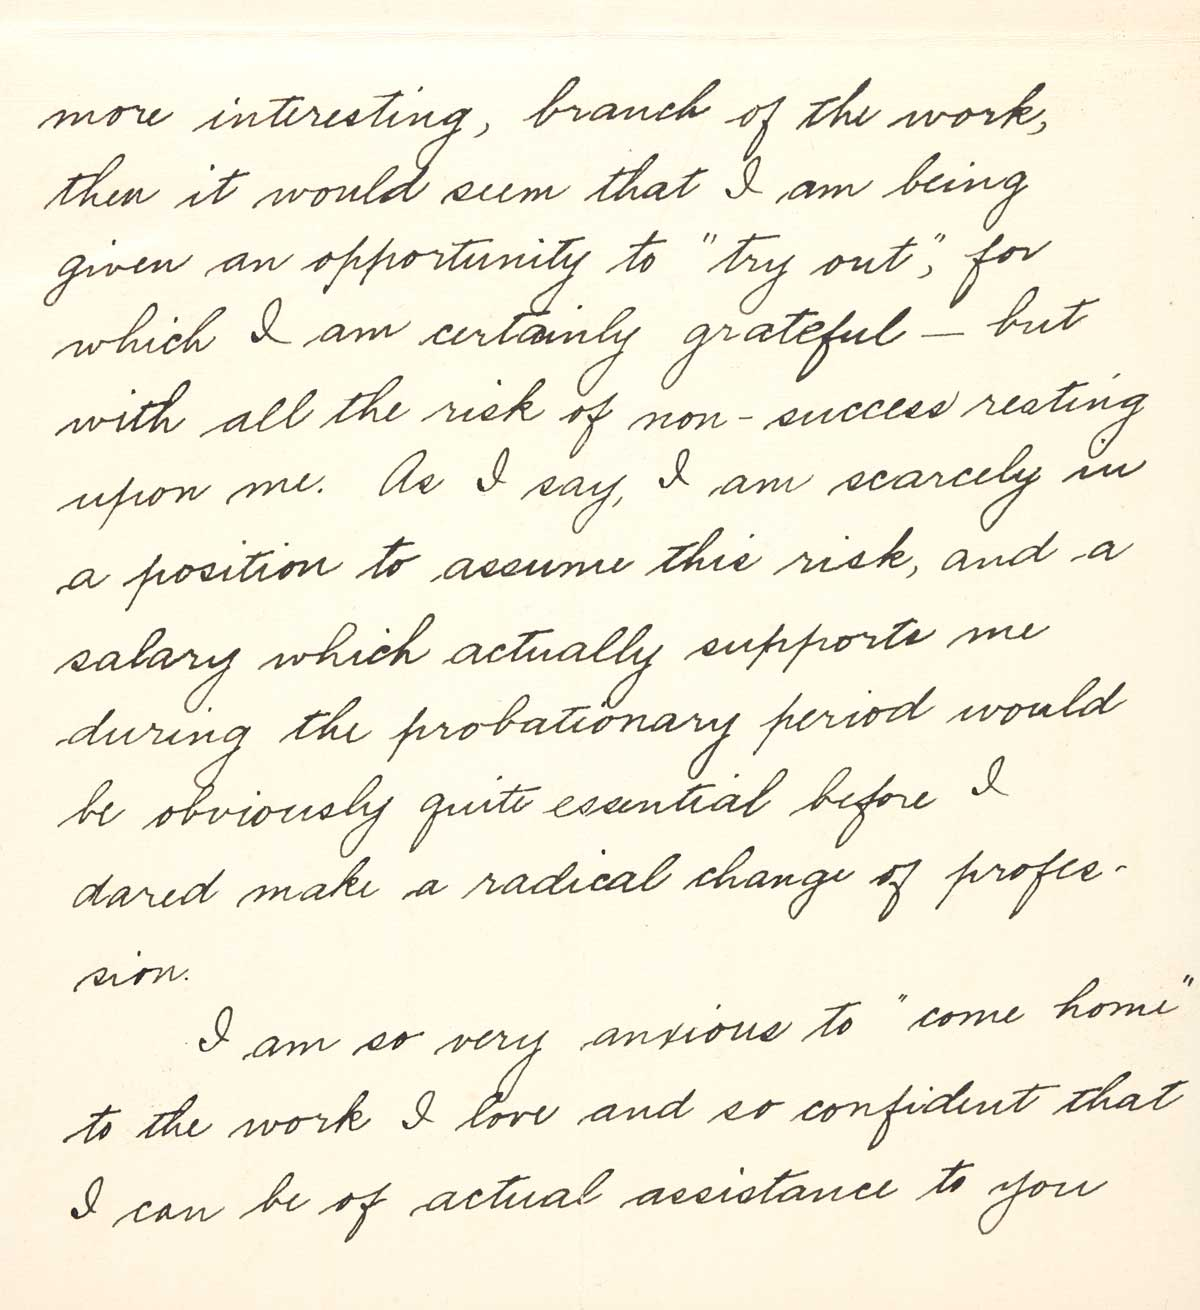 Letter from Betty Trier Berry to F.H. Seares of Mt. Wilson observatory p3 | Image courtesy of the Observatories of the Carnegie Institution for Science Collection at the Huntington Library, San Marino, California.jpg